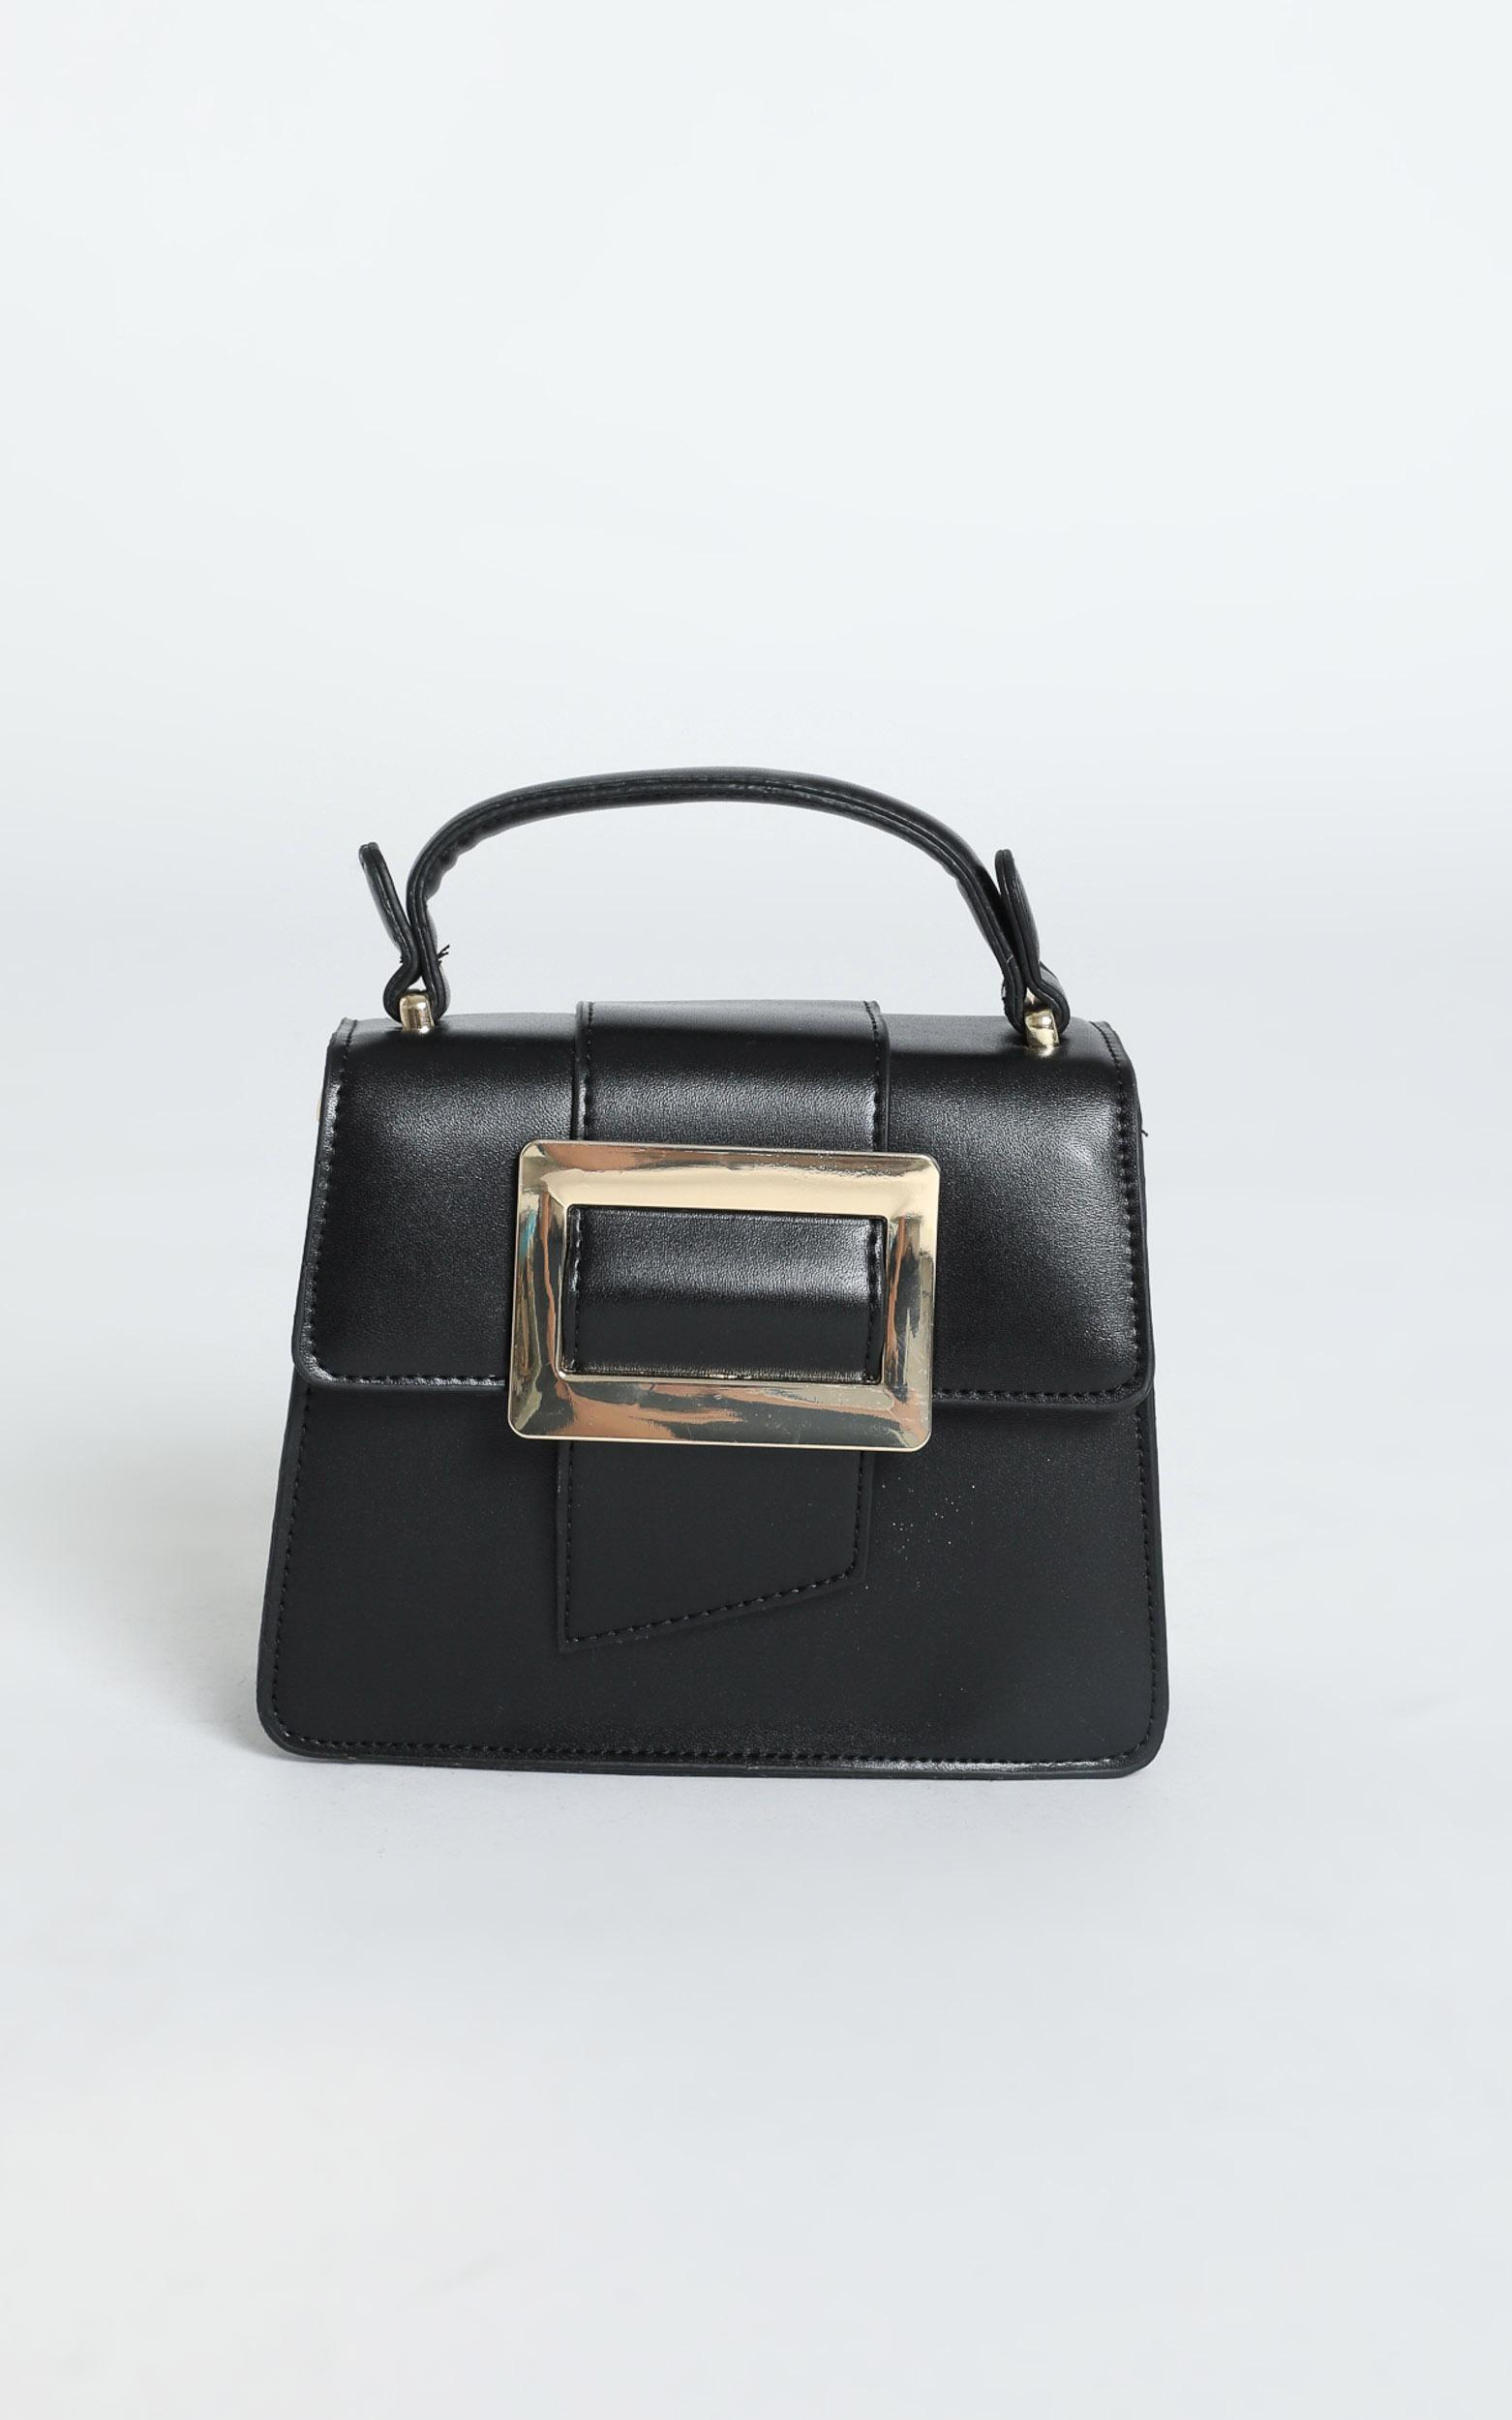 In Time Buckle Sling Bag in Black and Gold, , hi-res image number null